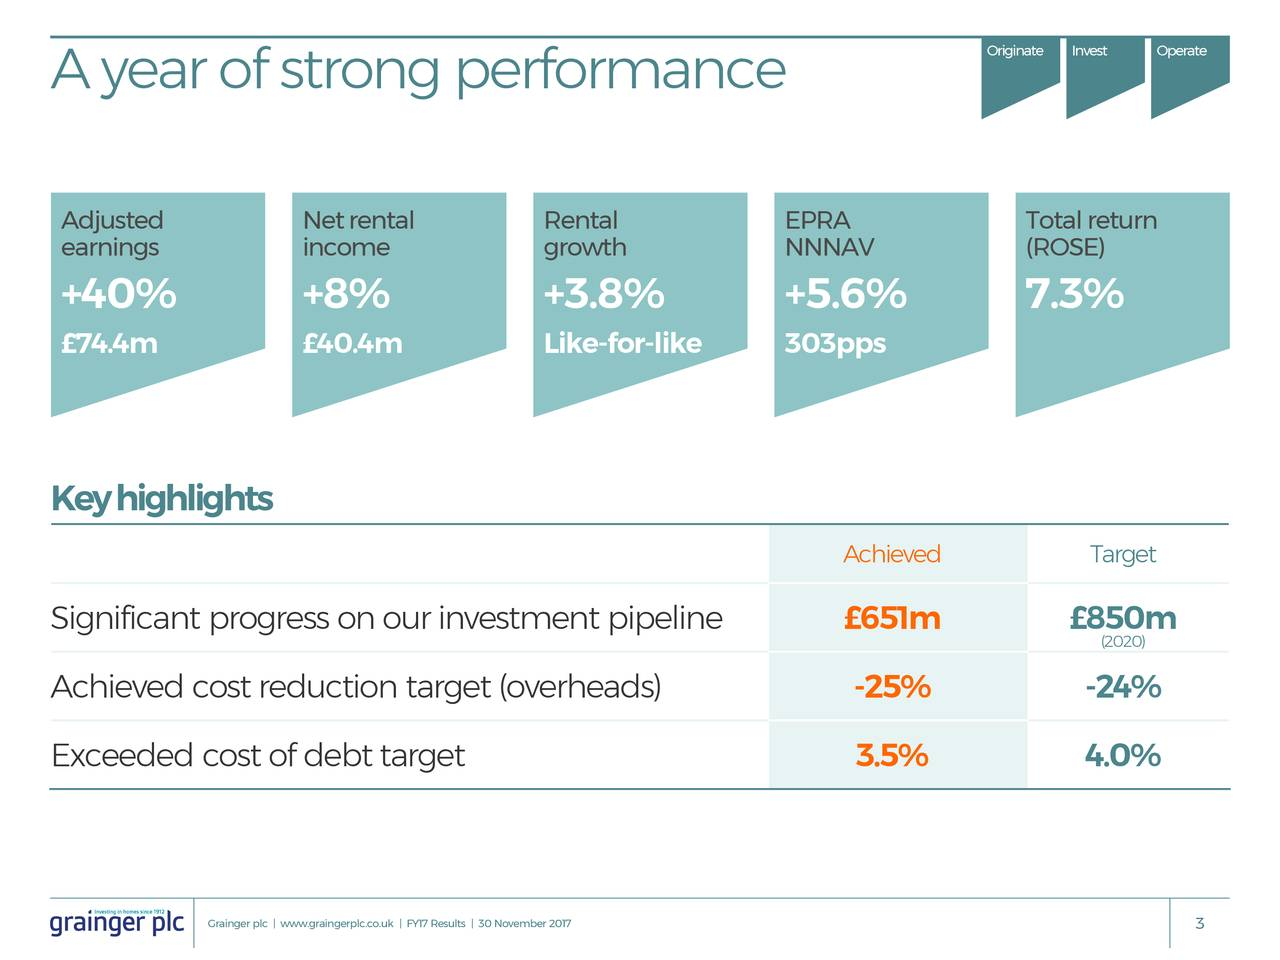 Ayearofstrongperformance Adjusted Netrental Rental EPRA Totalreturn earnings income growth NNNAV (ROSE) +40% +8% +3.8% +5.6% 7.3% £74.4m £40.4m Like-for-like 303pps Keyhighlights Achieved Target Significant progress onourinvestment pipeline £651m £8(2020) Achieved cost reduction target (overheads) -25% -24% Exceeded cost of debttarget 3.5% 4.0% Grainger plc | www.graingerplc.co.uk | FY17 Results | 30 Novembe3 2017